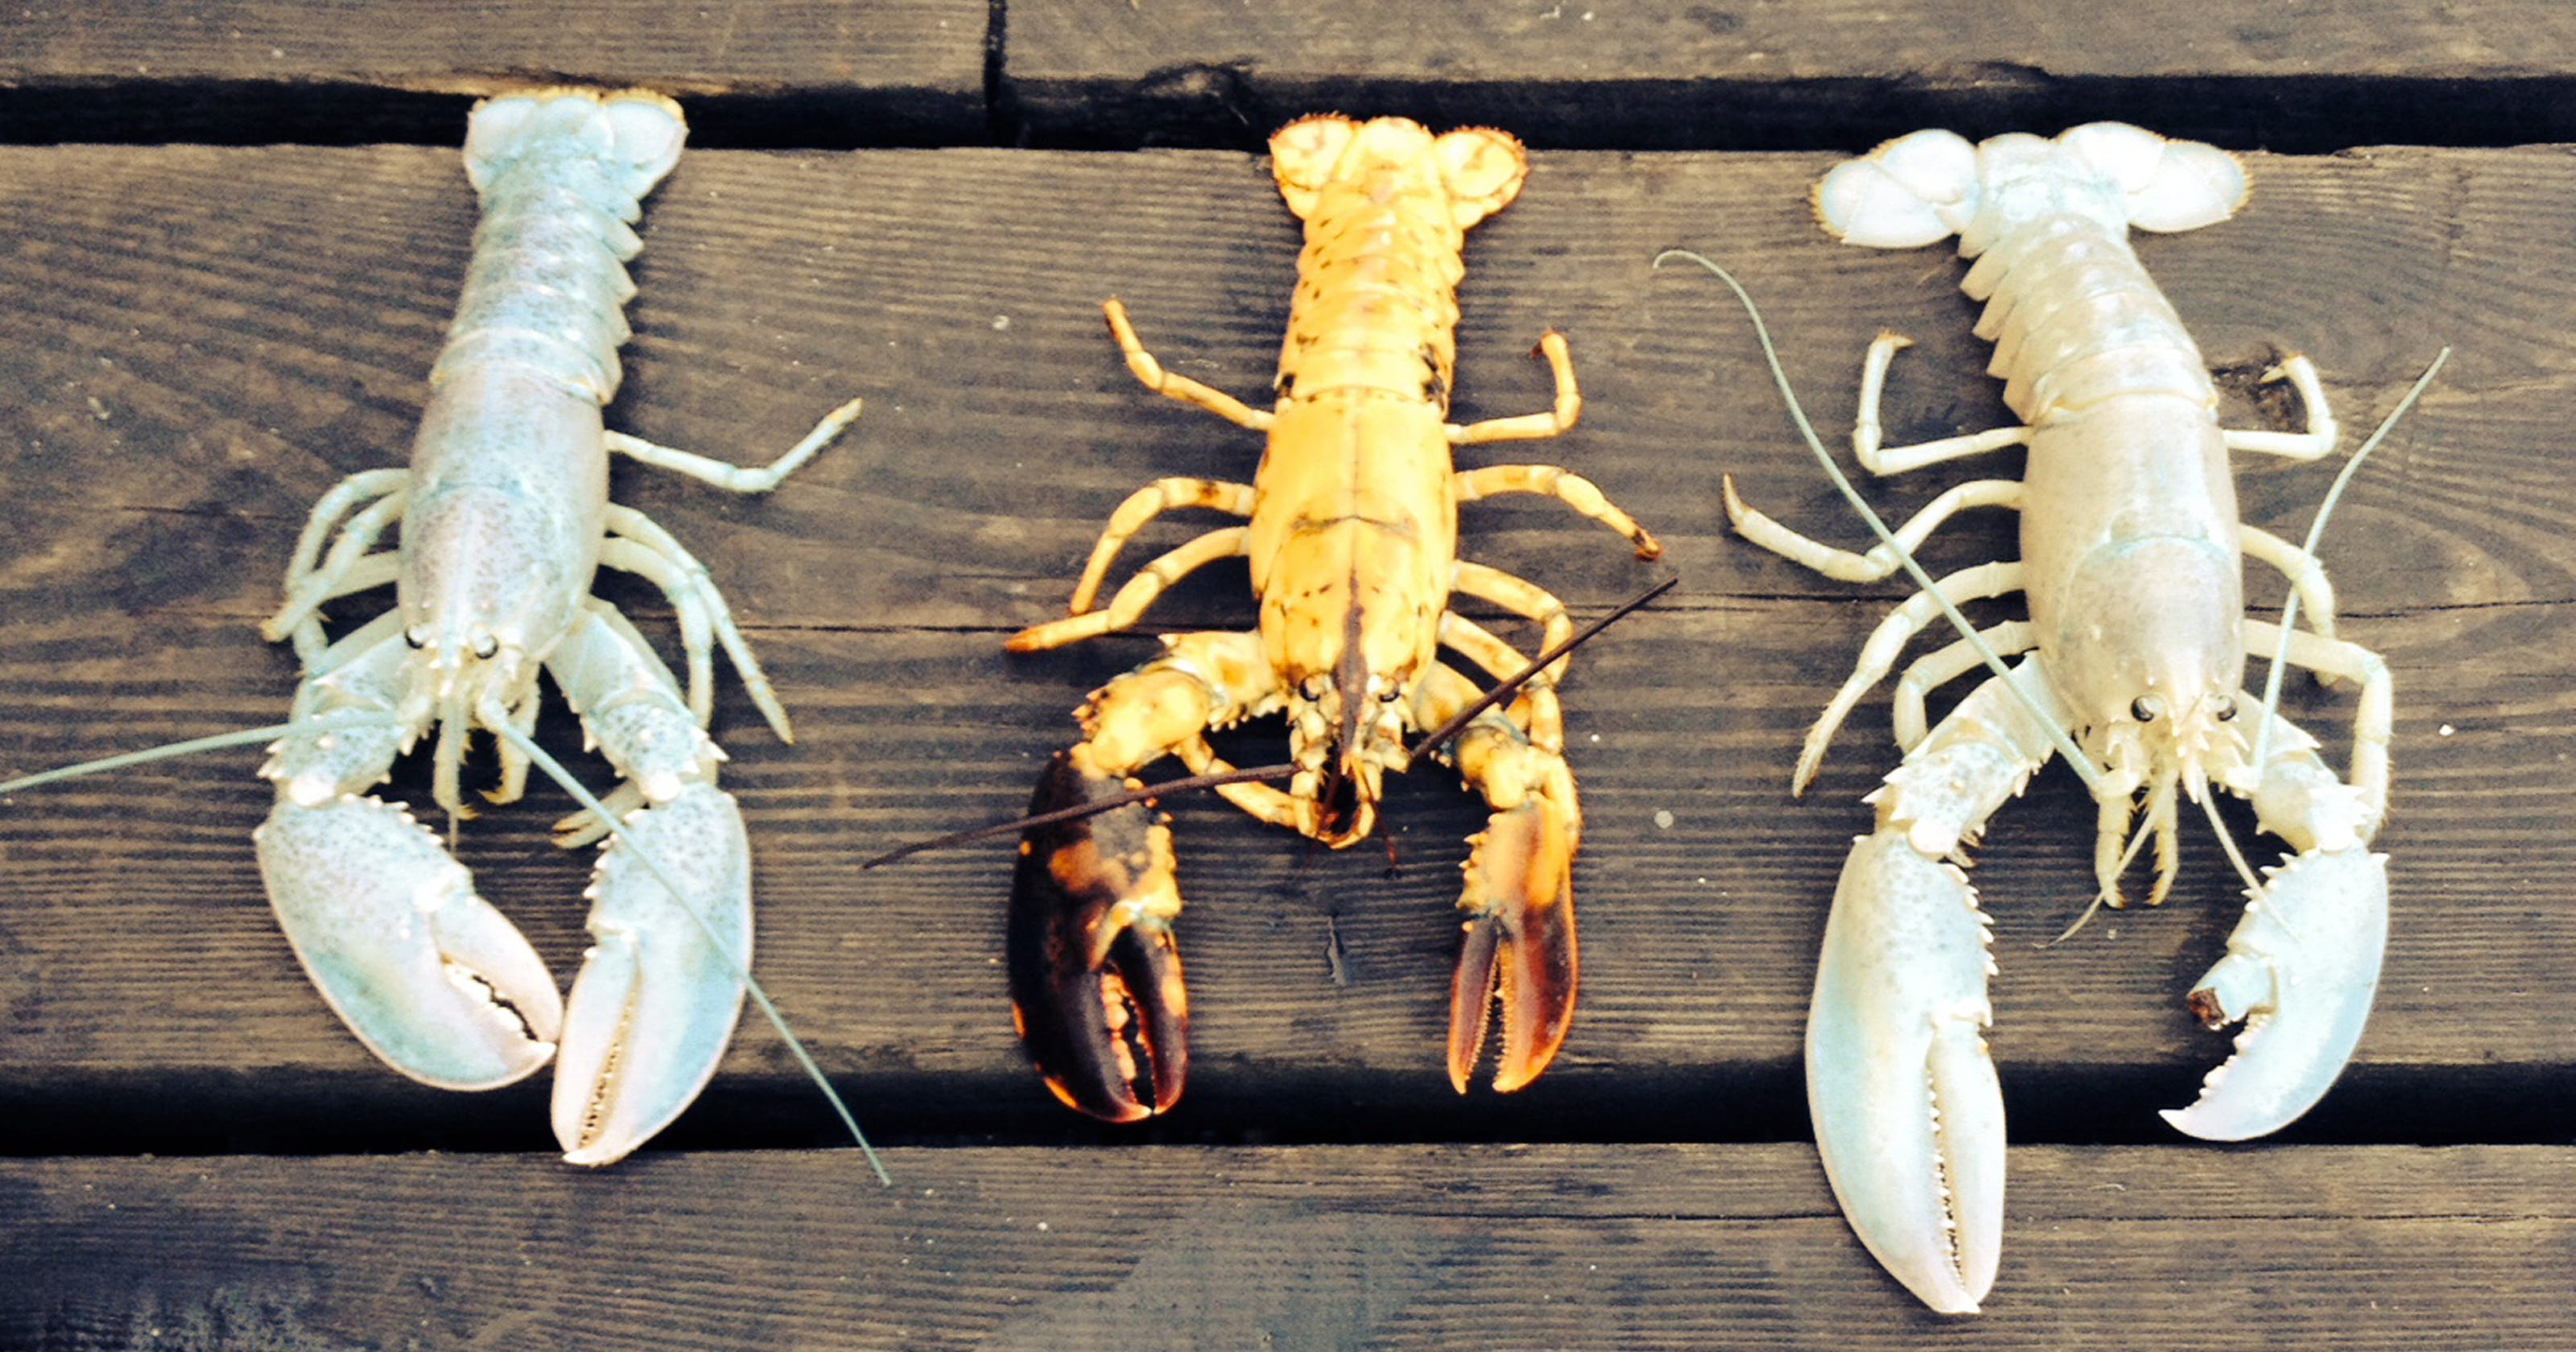 2 Of Rarest Of All Lobsters Caught 5 Days Apart